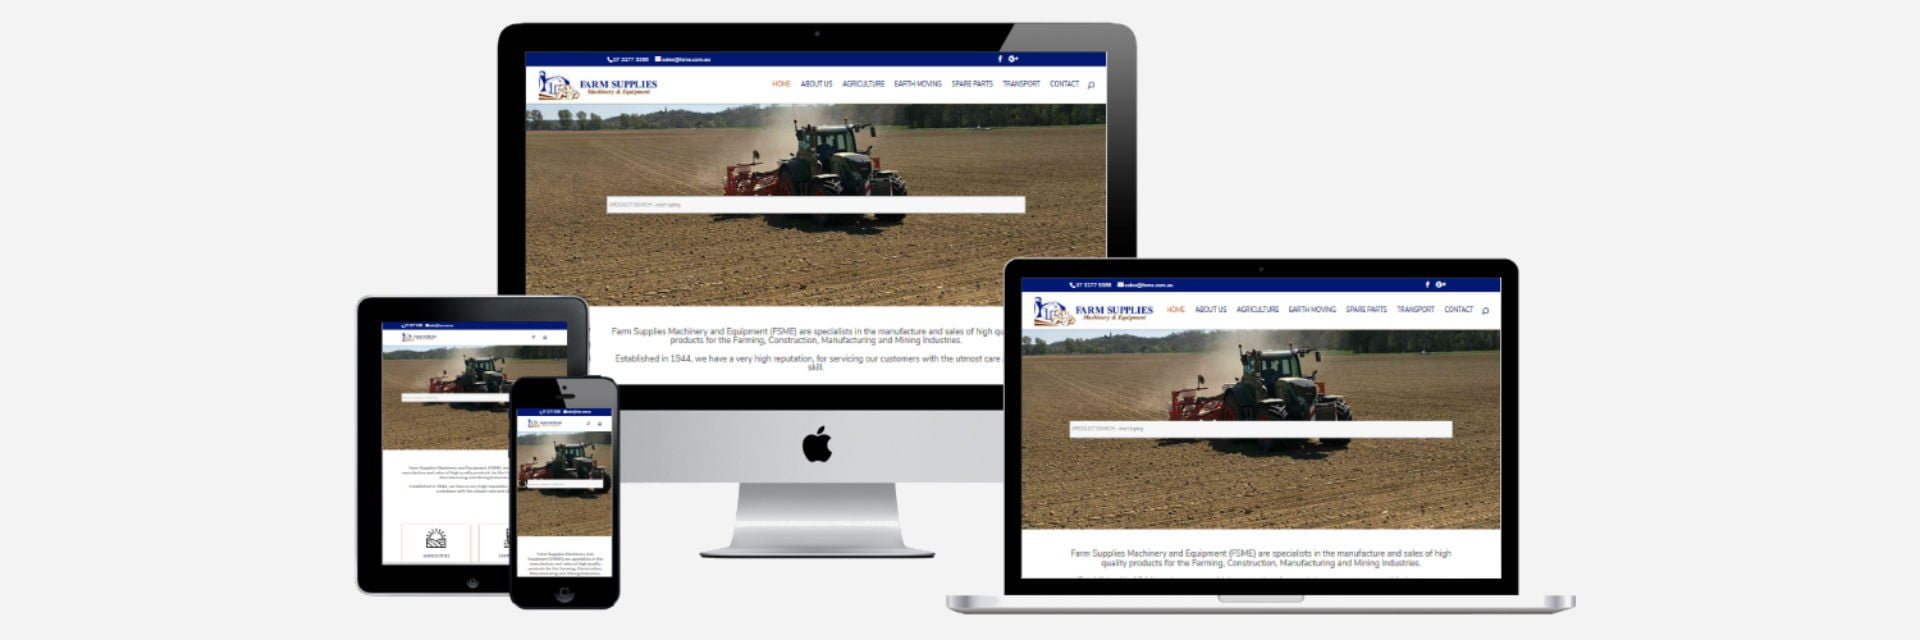 Farm Supplies Machinery and Equipment - New Website Design